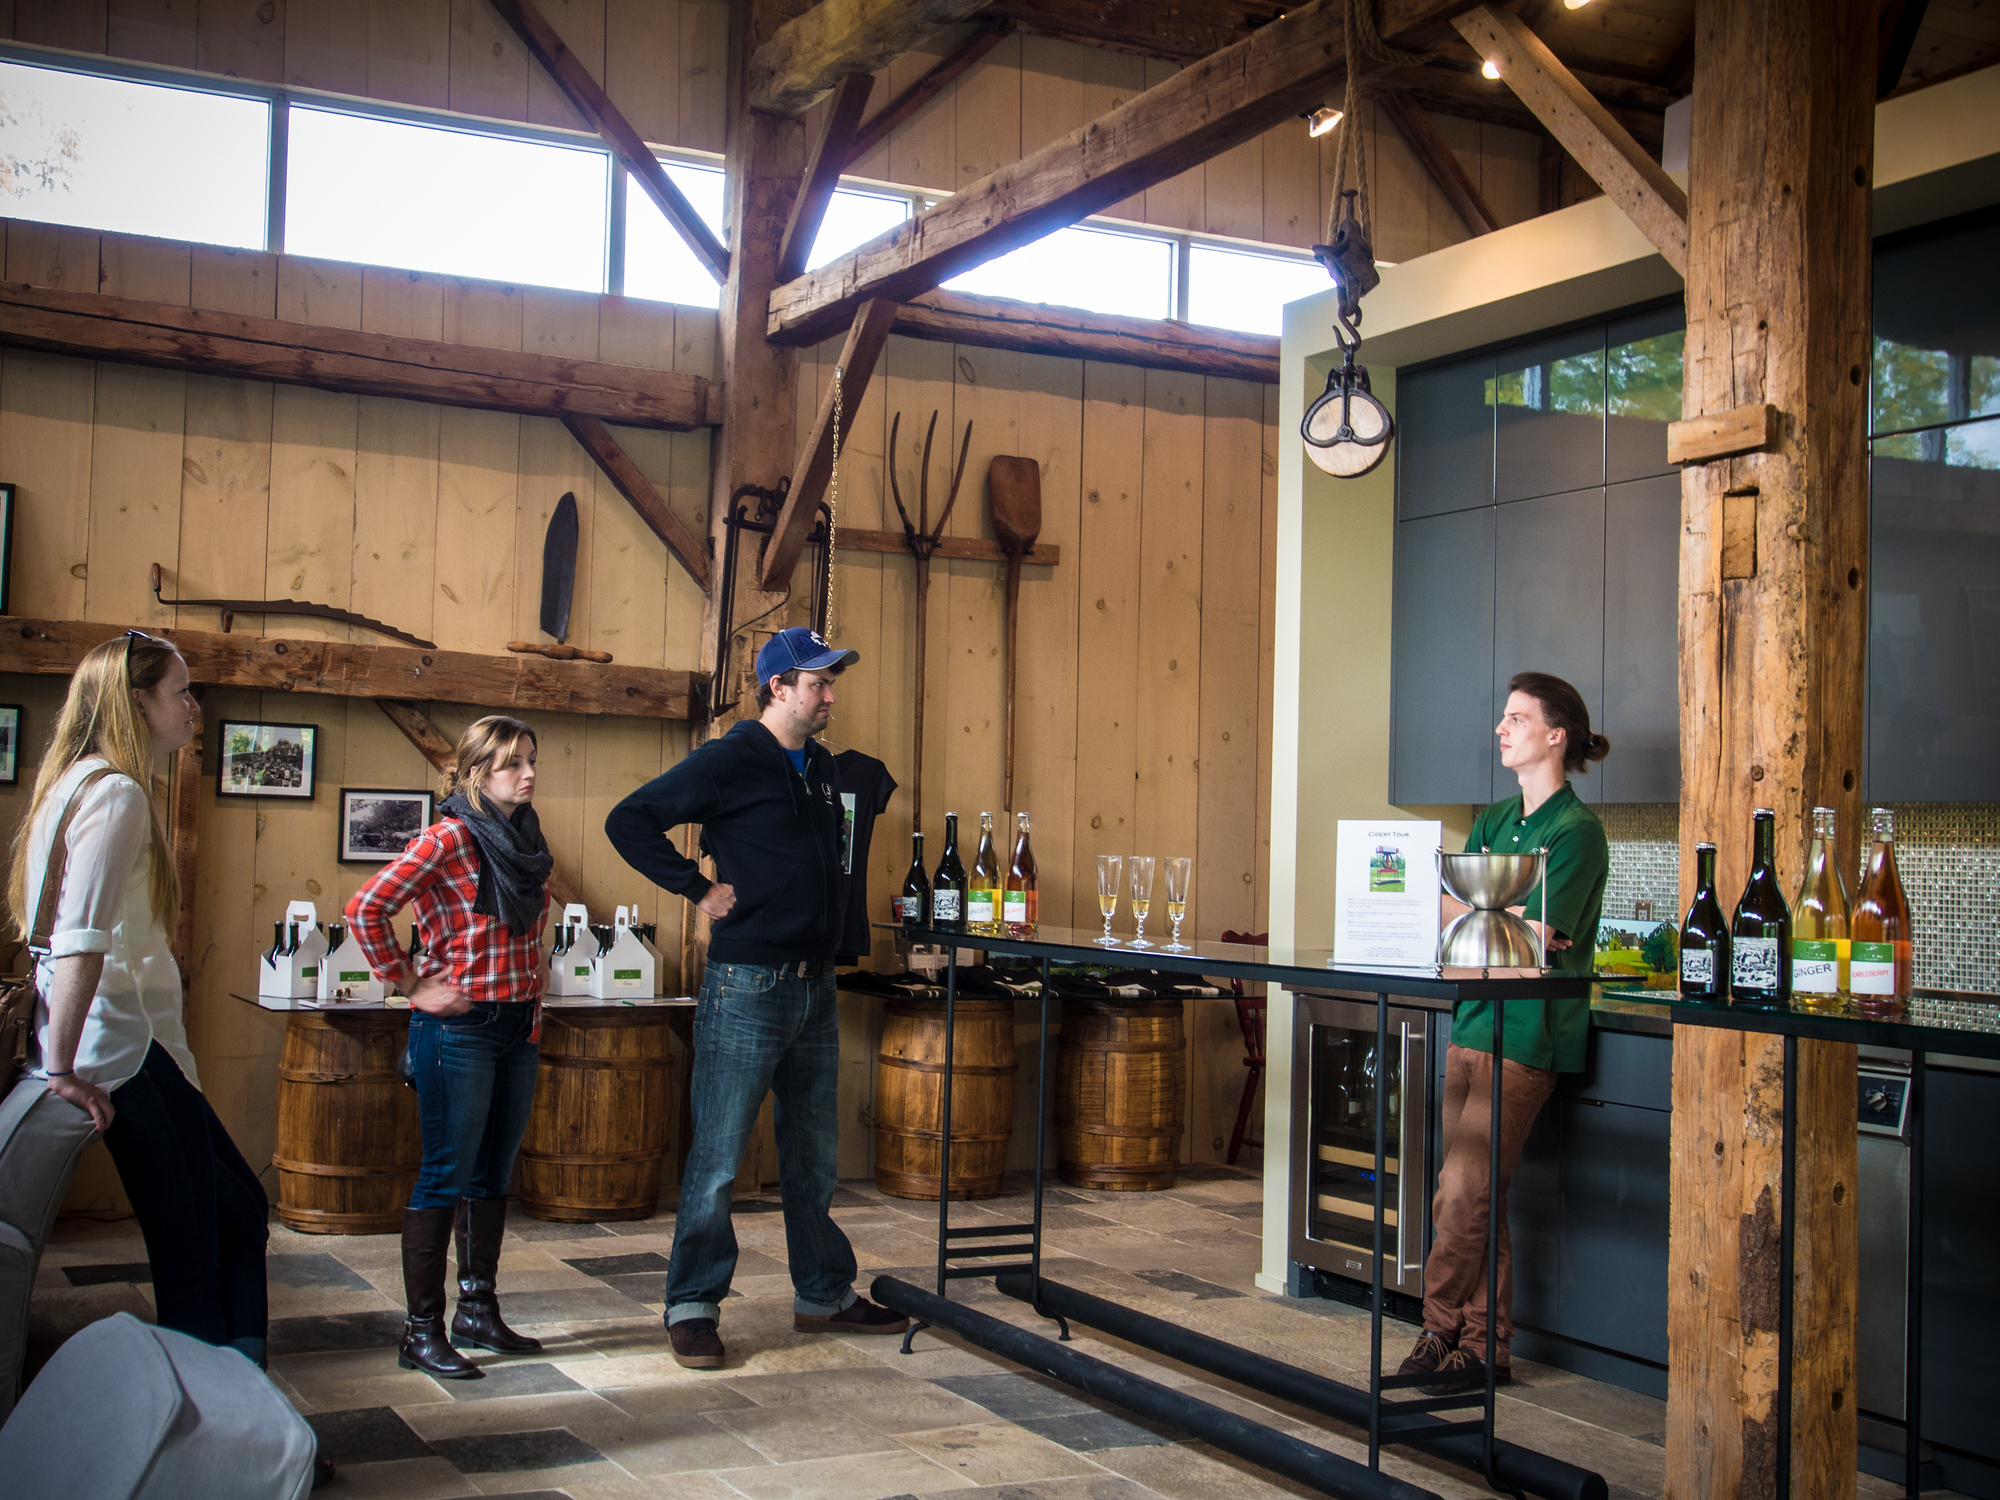 Beaver Valley Cider is part of the Saints and Sinners Trail in Grey County featuring craft beer, cider and wine.